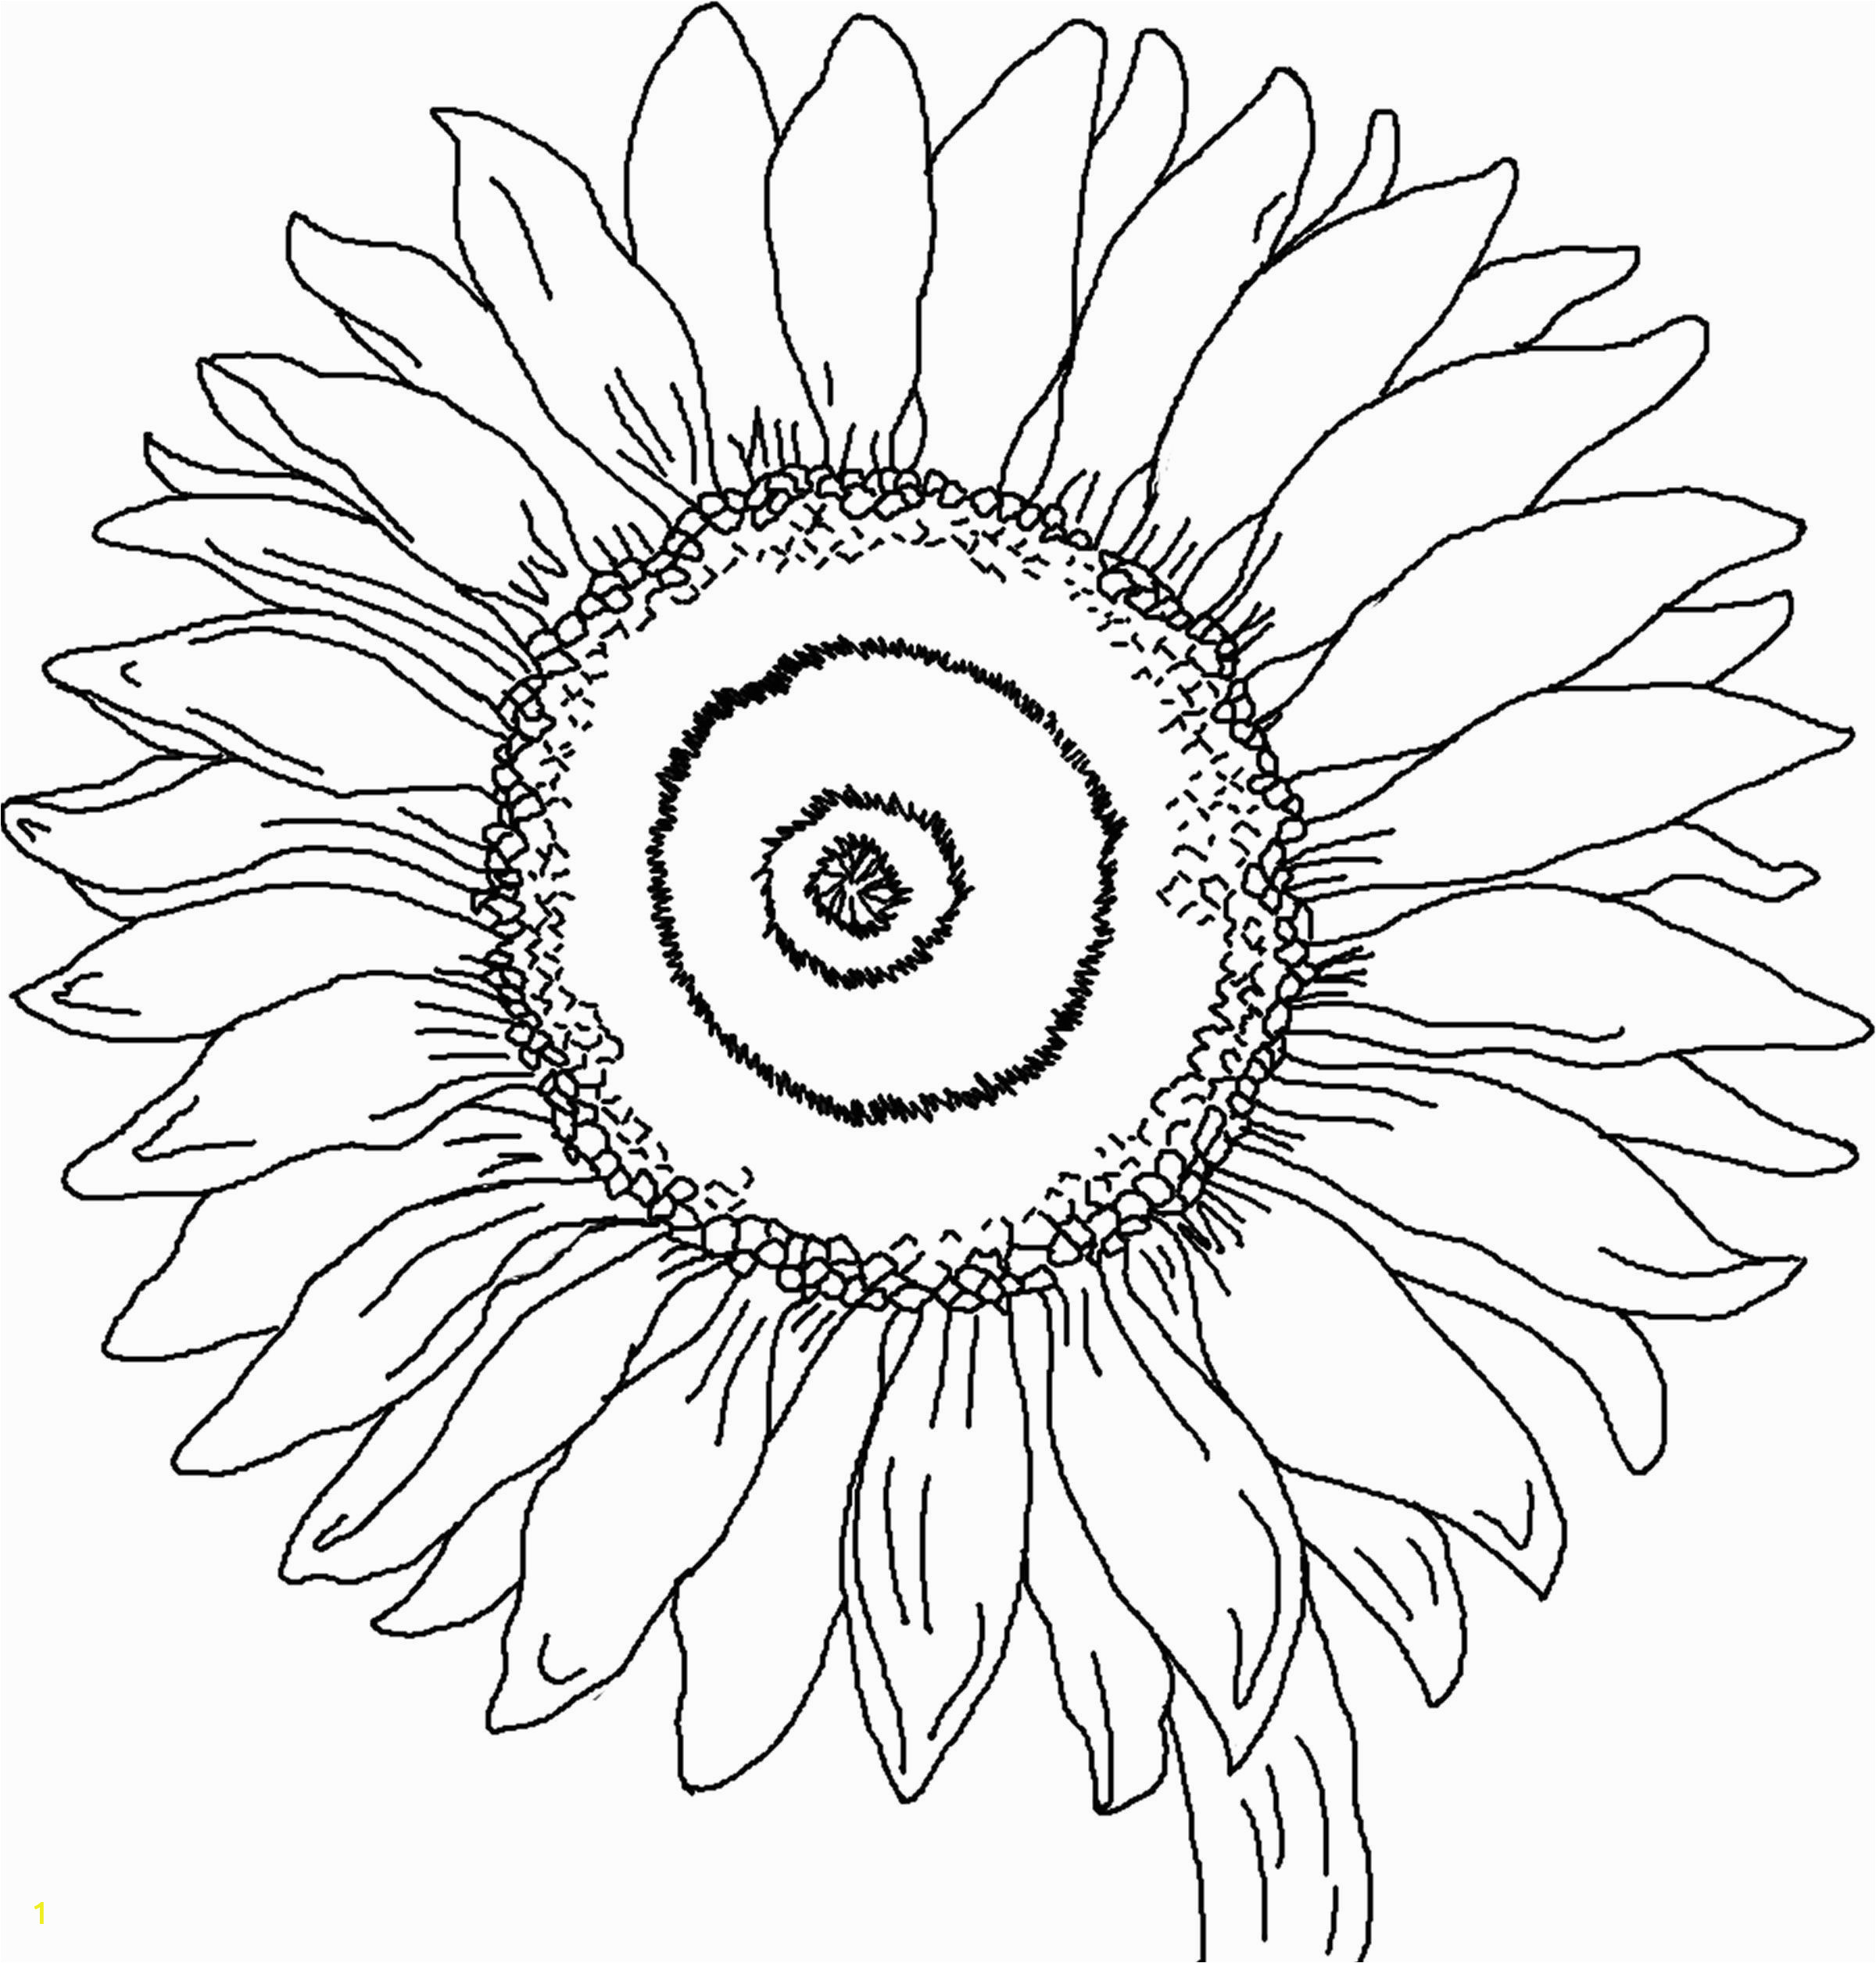 Realistic Sunflower Coloring Page Sunflower Coloring Page for Kindergarten